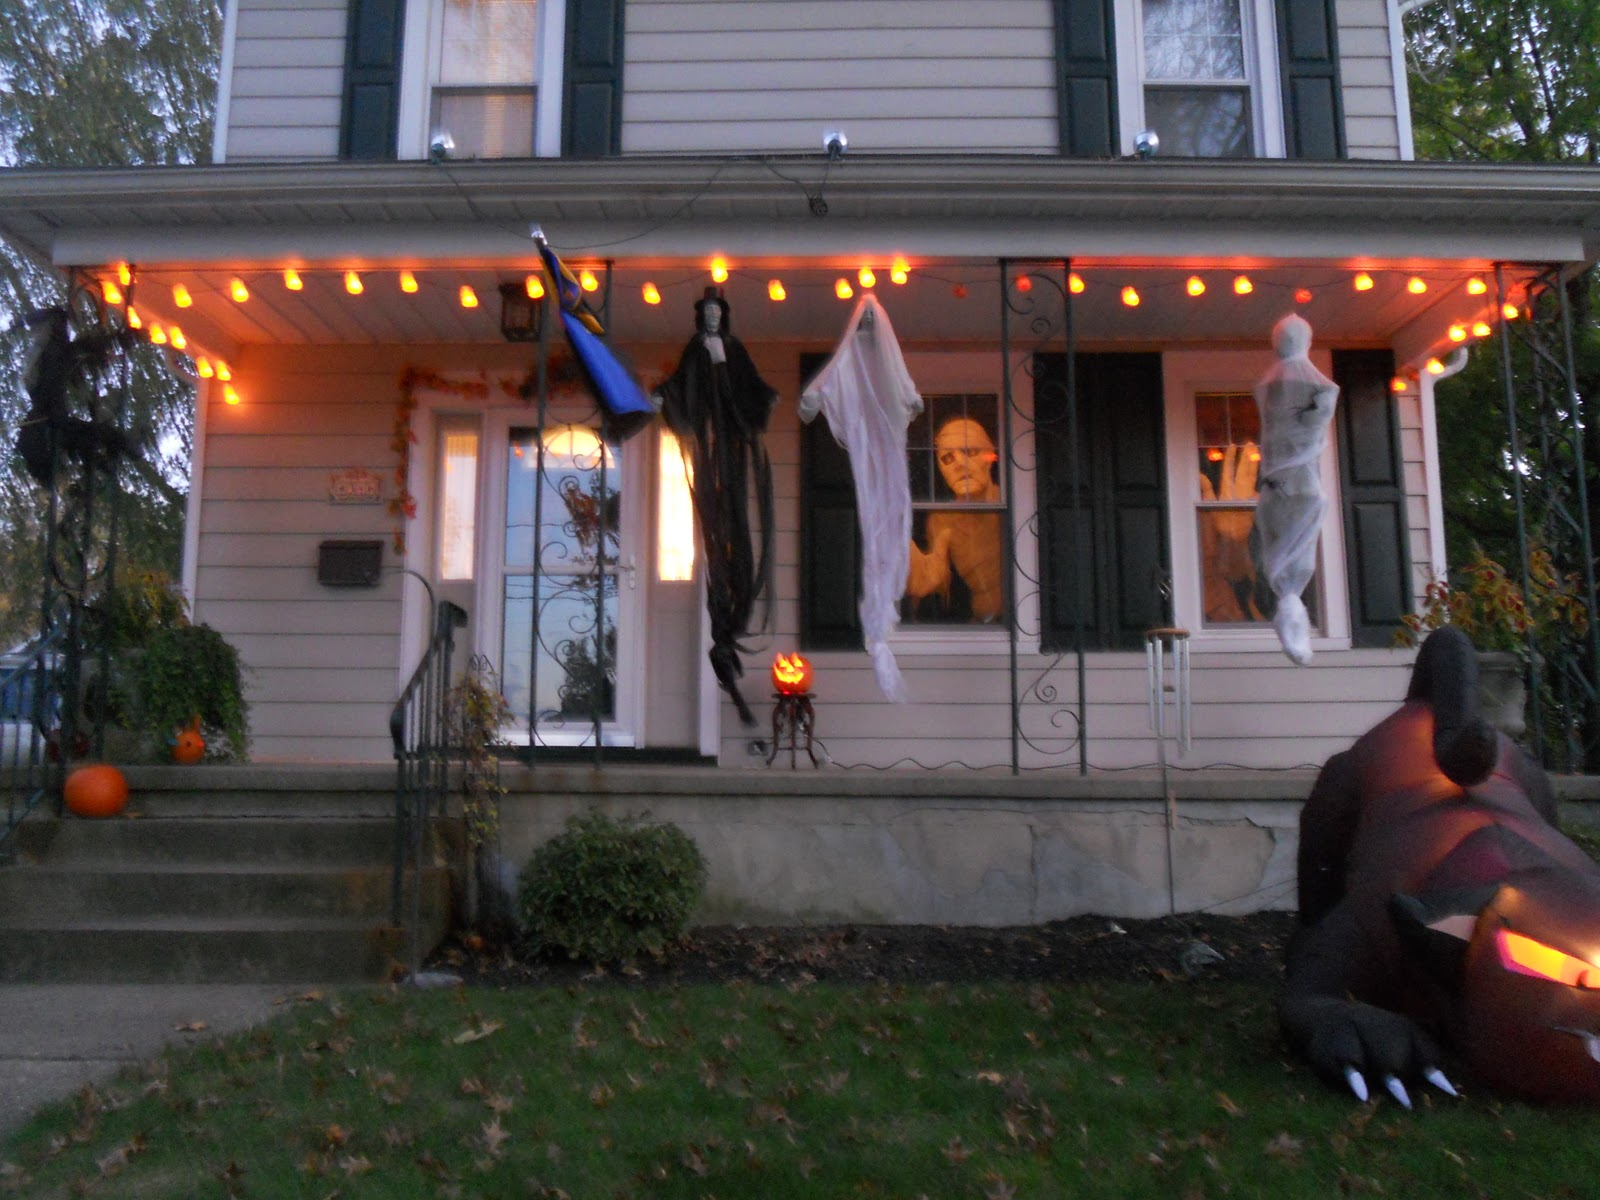 How to decorate your front lawn for halloween for Decorating your home for halloween